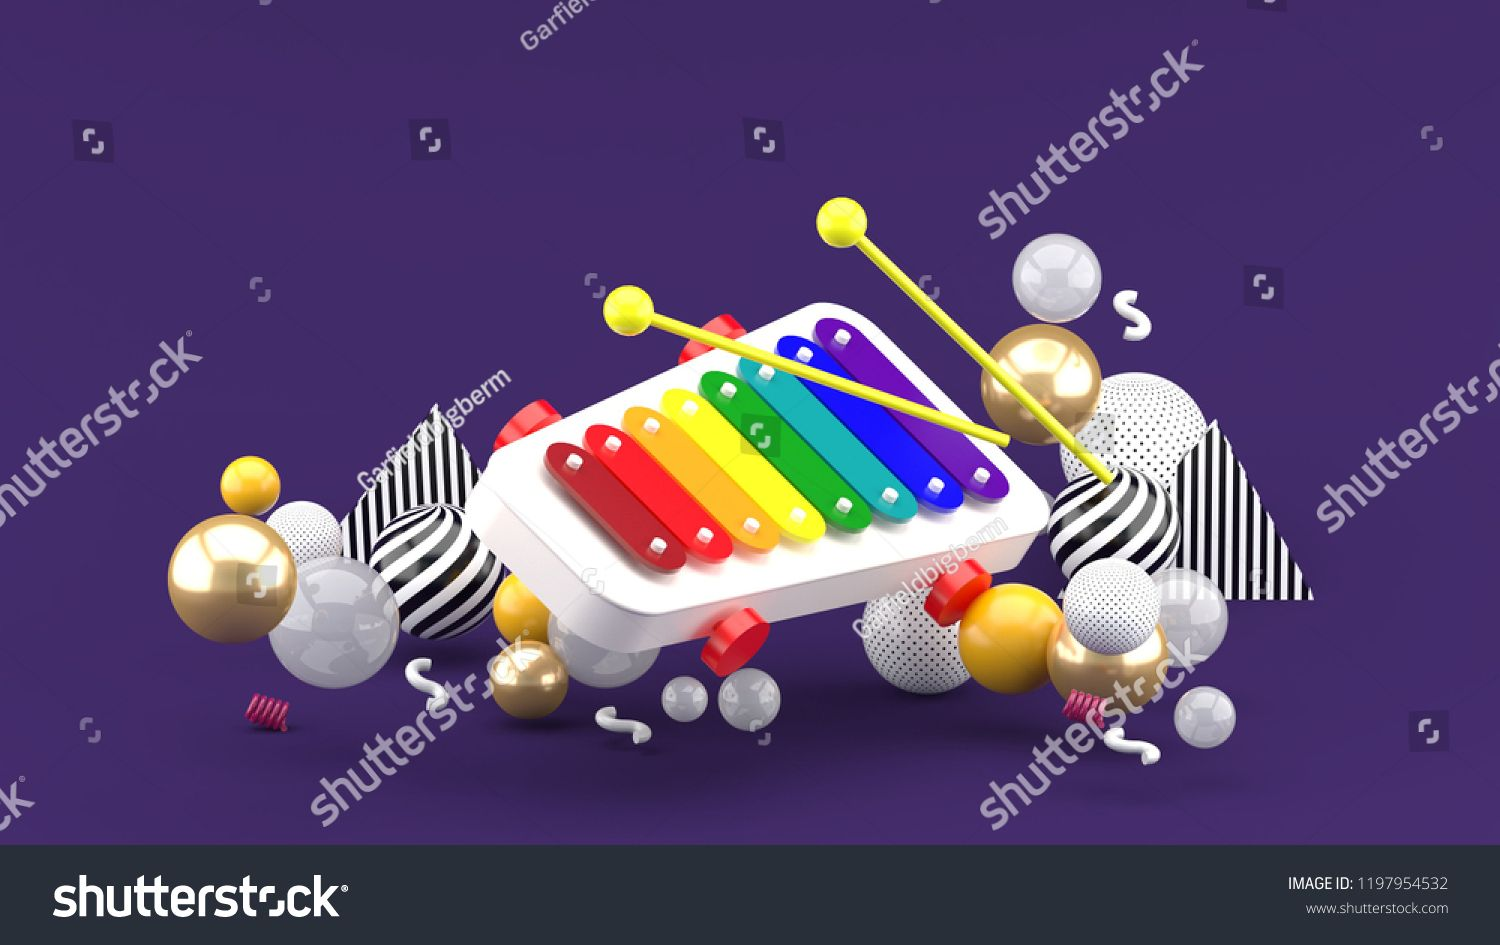 d6a390f09 Xylophone toy among colorful balls on purple background.-3d rendering. colorful toy Xylophone balls